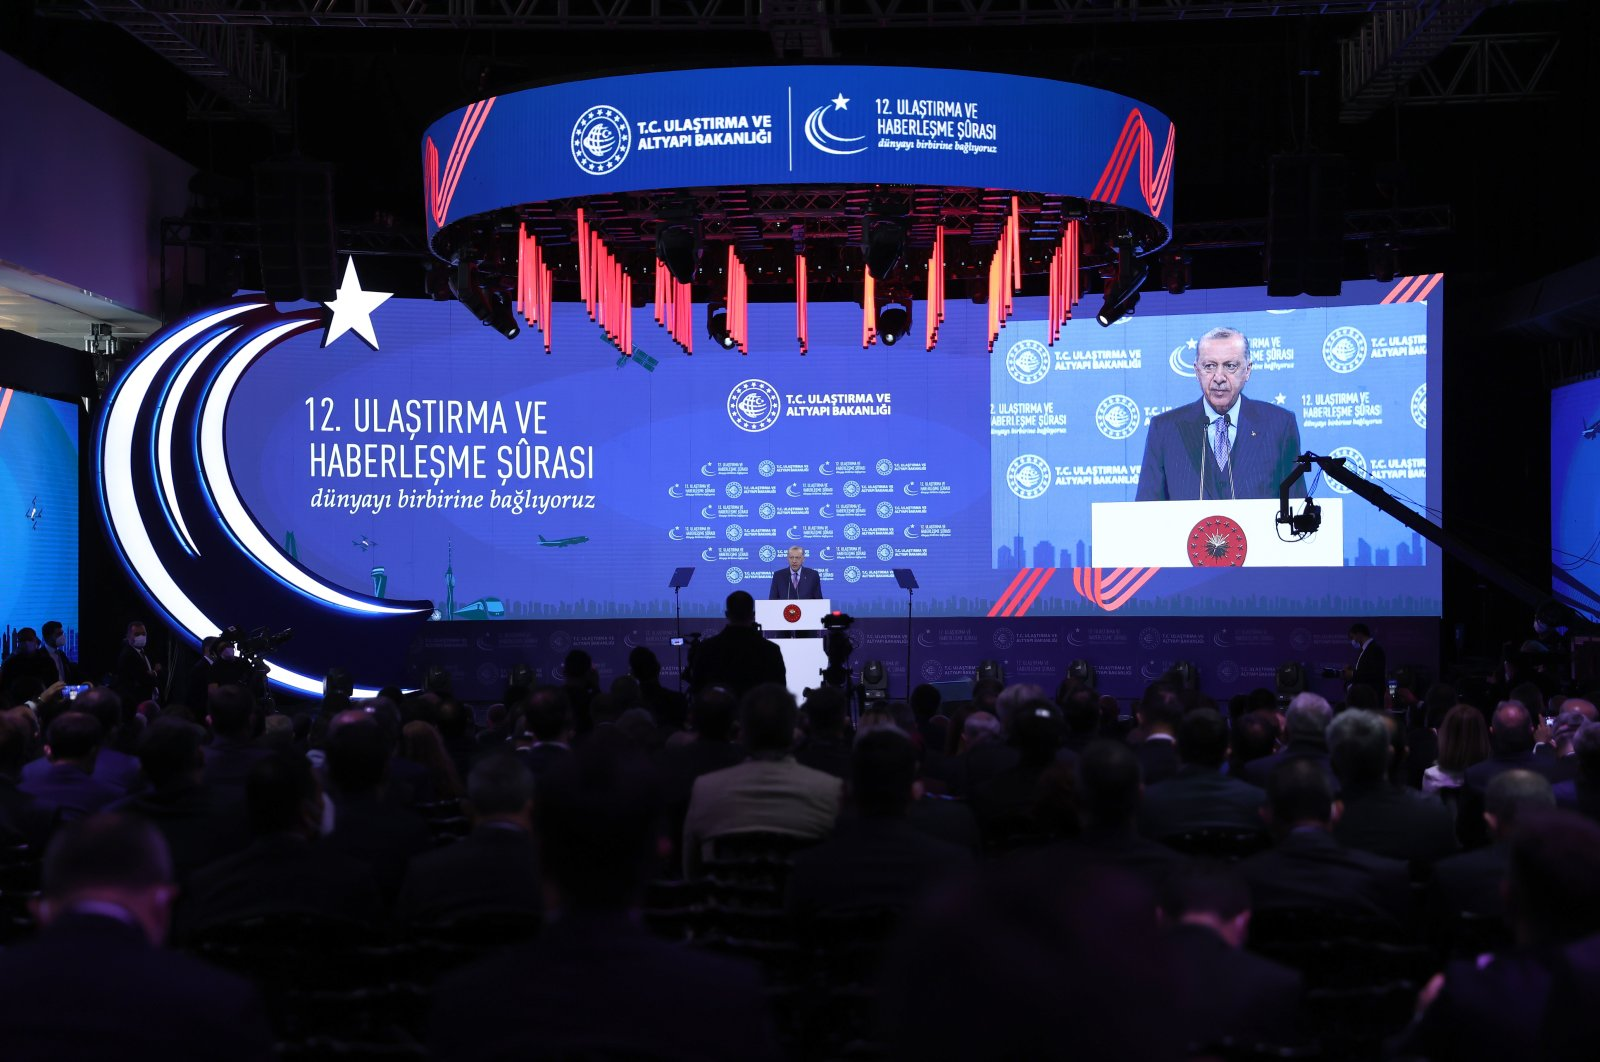 President Recep Tayyip Erdoğan speaks at the 12th Transport and Communication Council held at Atatürk Airport, Istanbul, Turkey, Oct. 8, 2021. (AA Photo)